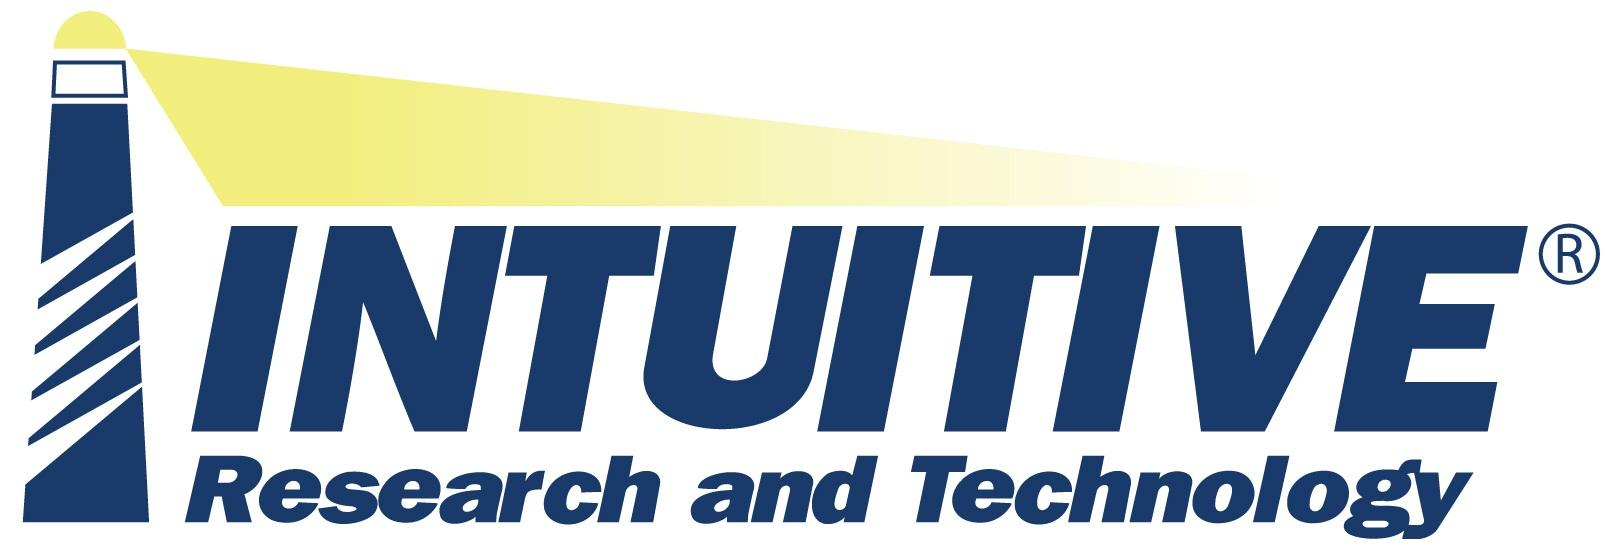 Intuitive Research and Technology Corporation Logo